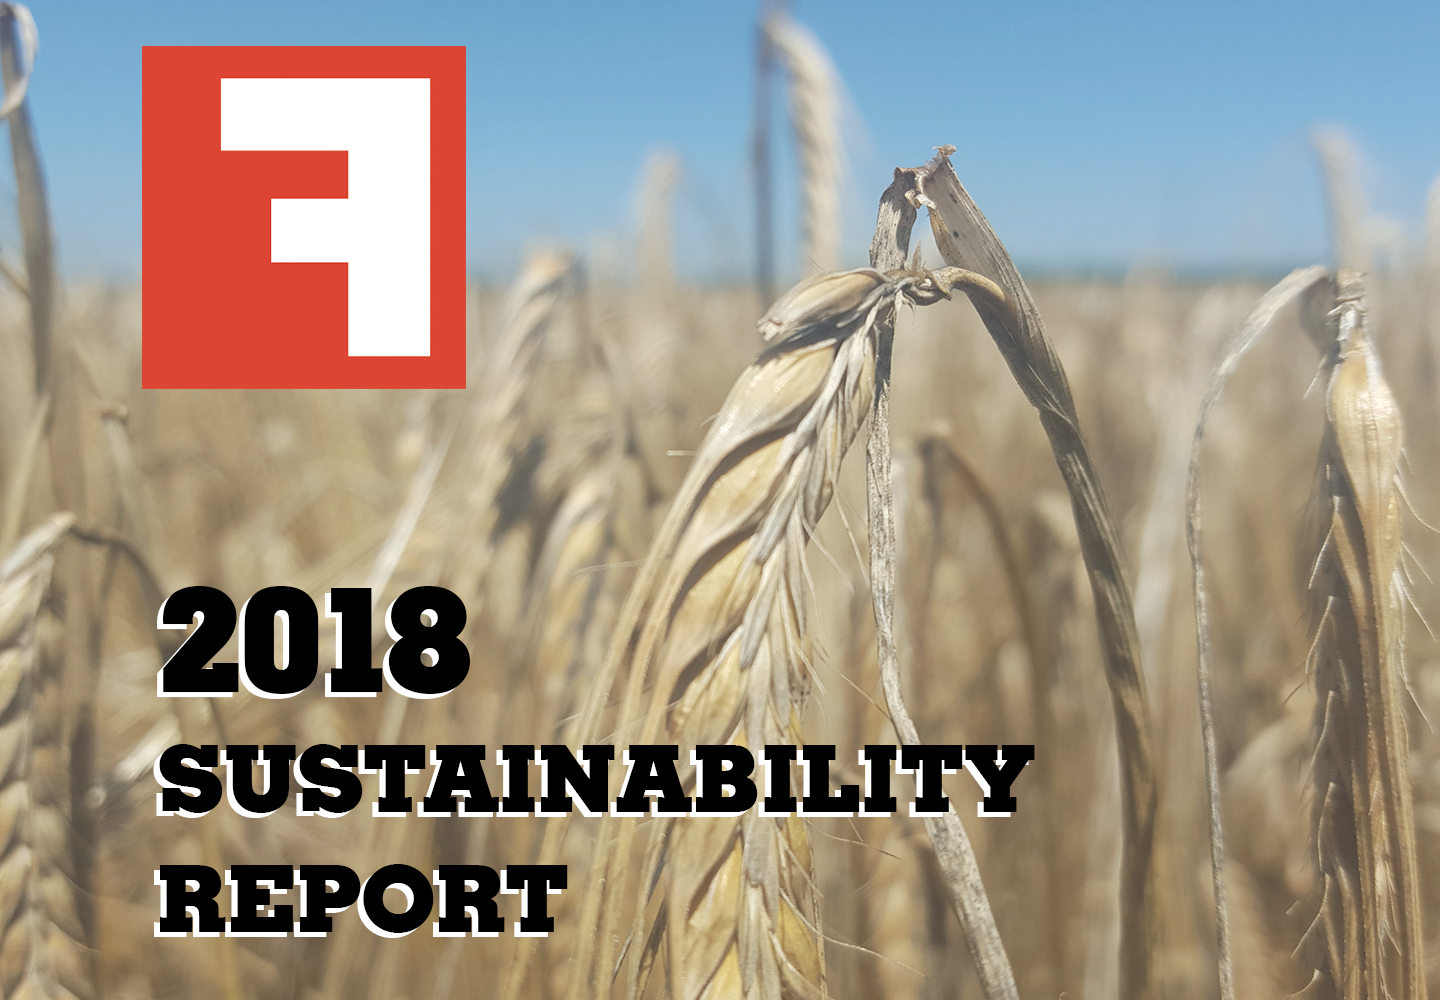 2018-sustainabiity-report-wide.png#asset:8477